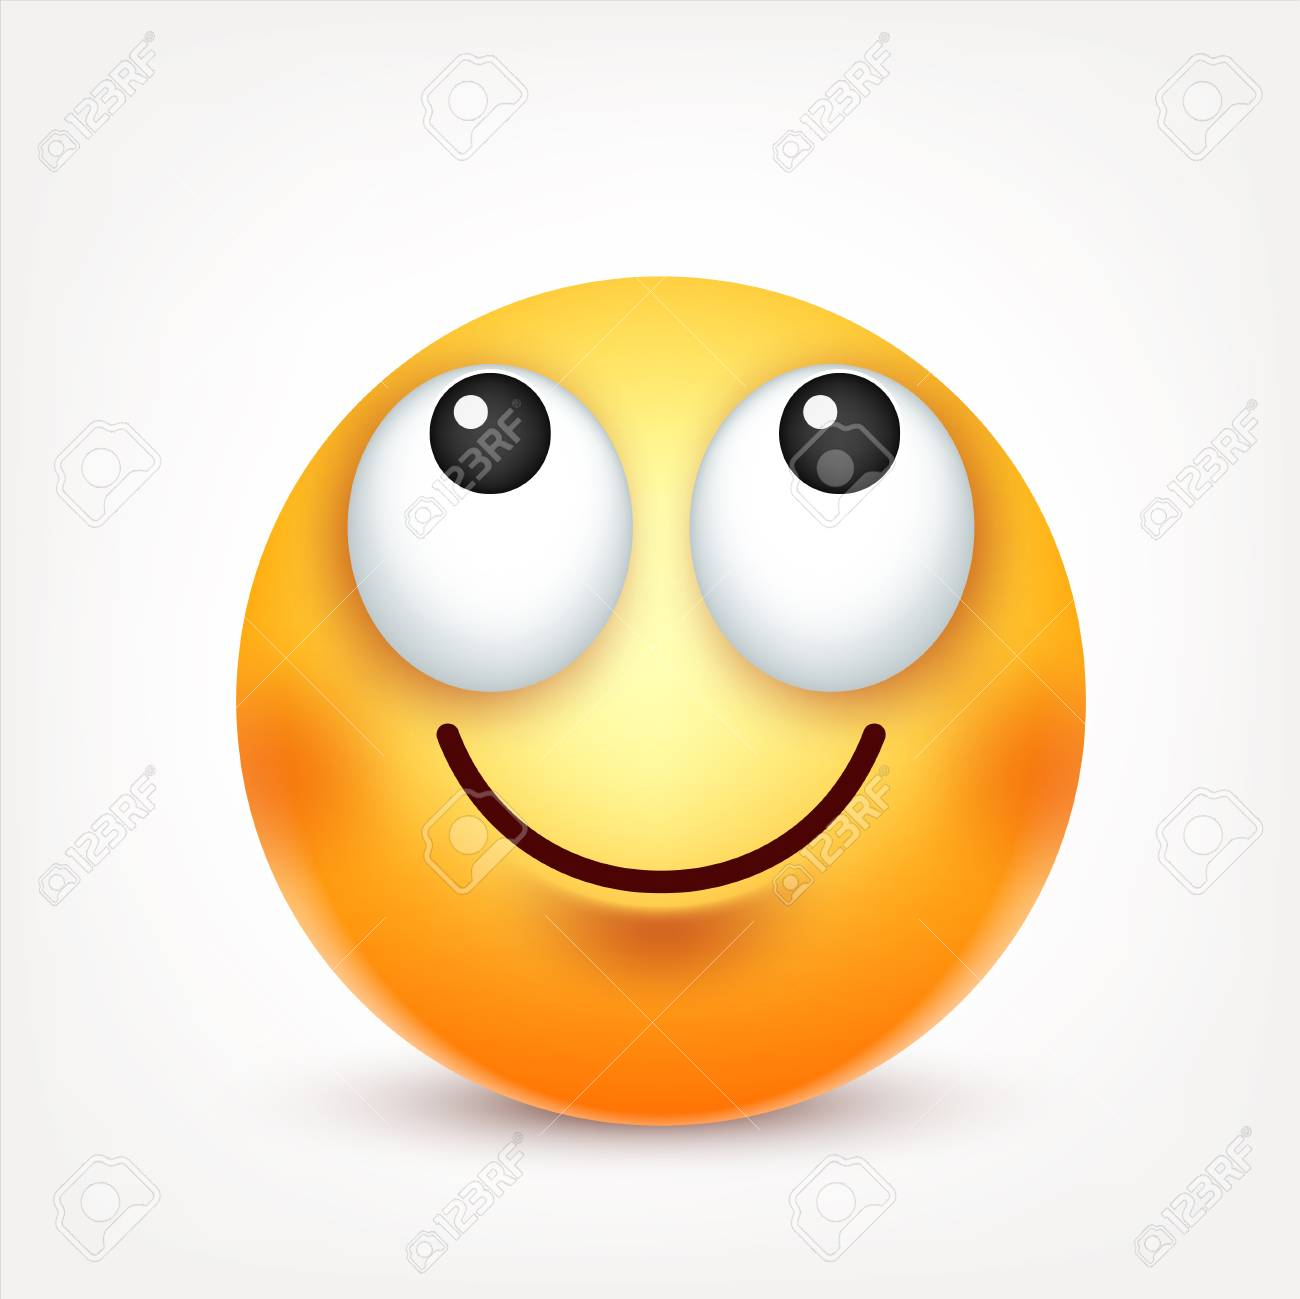 Smileyemoticon yellow face with emotions facial expression smileyemoticon yellow face with emotions facial expression 3d realistic emoji buycottarizona Choice Image